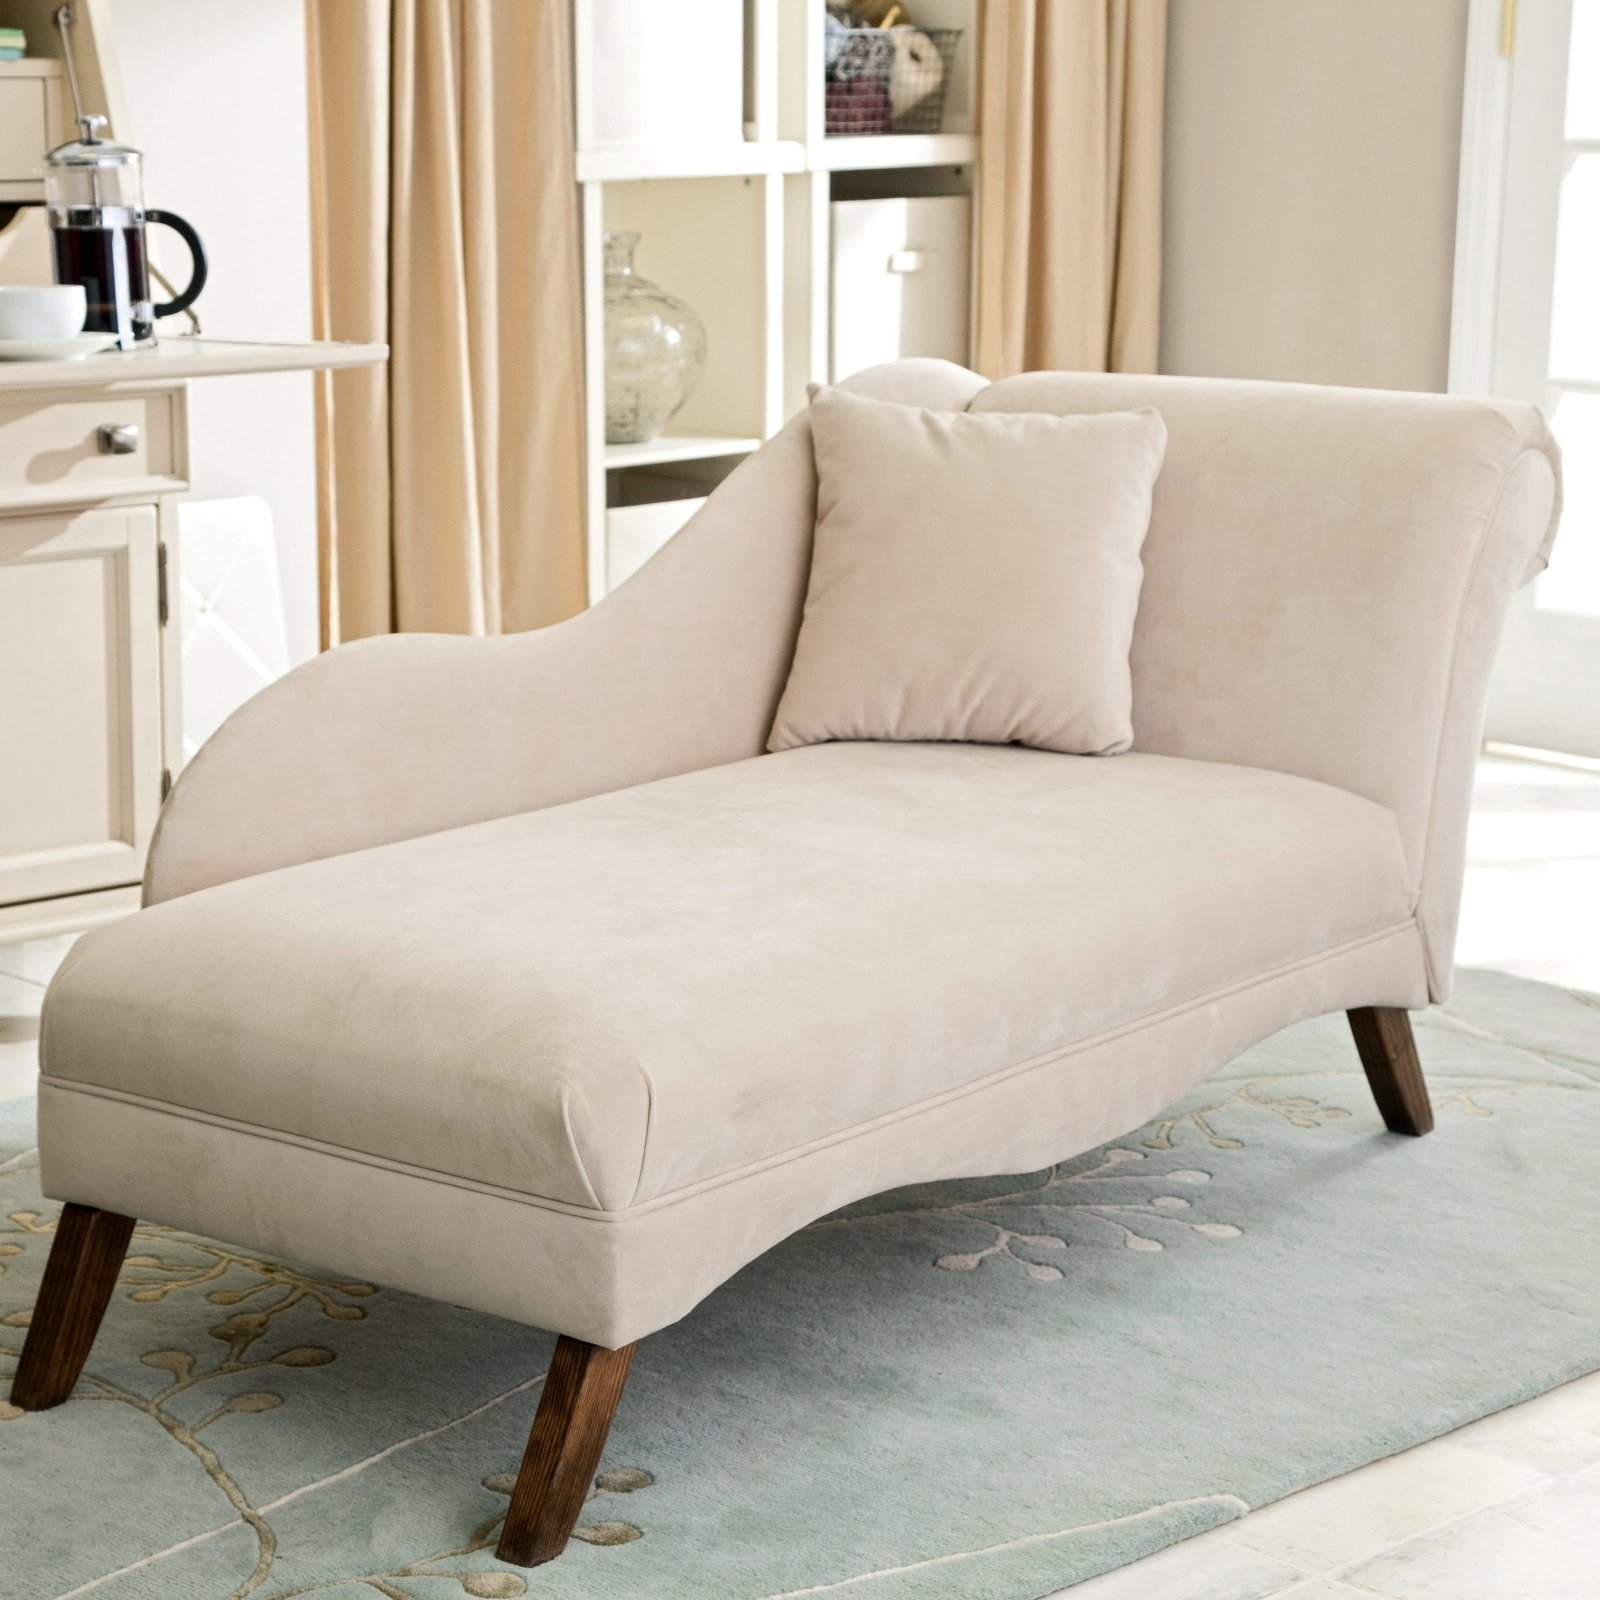 Chaise Lounge Chairs For Bedroom – Decofurnish With Preferred Chaise Lounge Chairs With Arms (View 5 of 15)